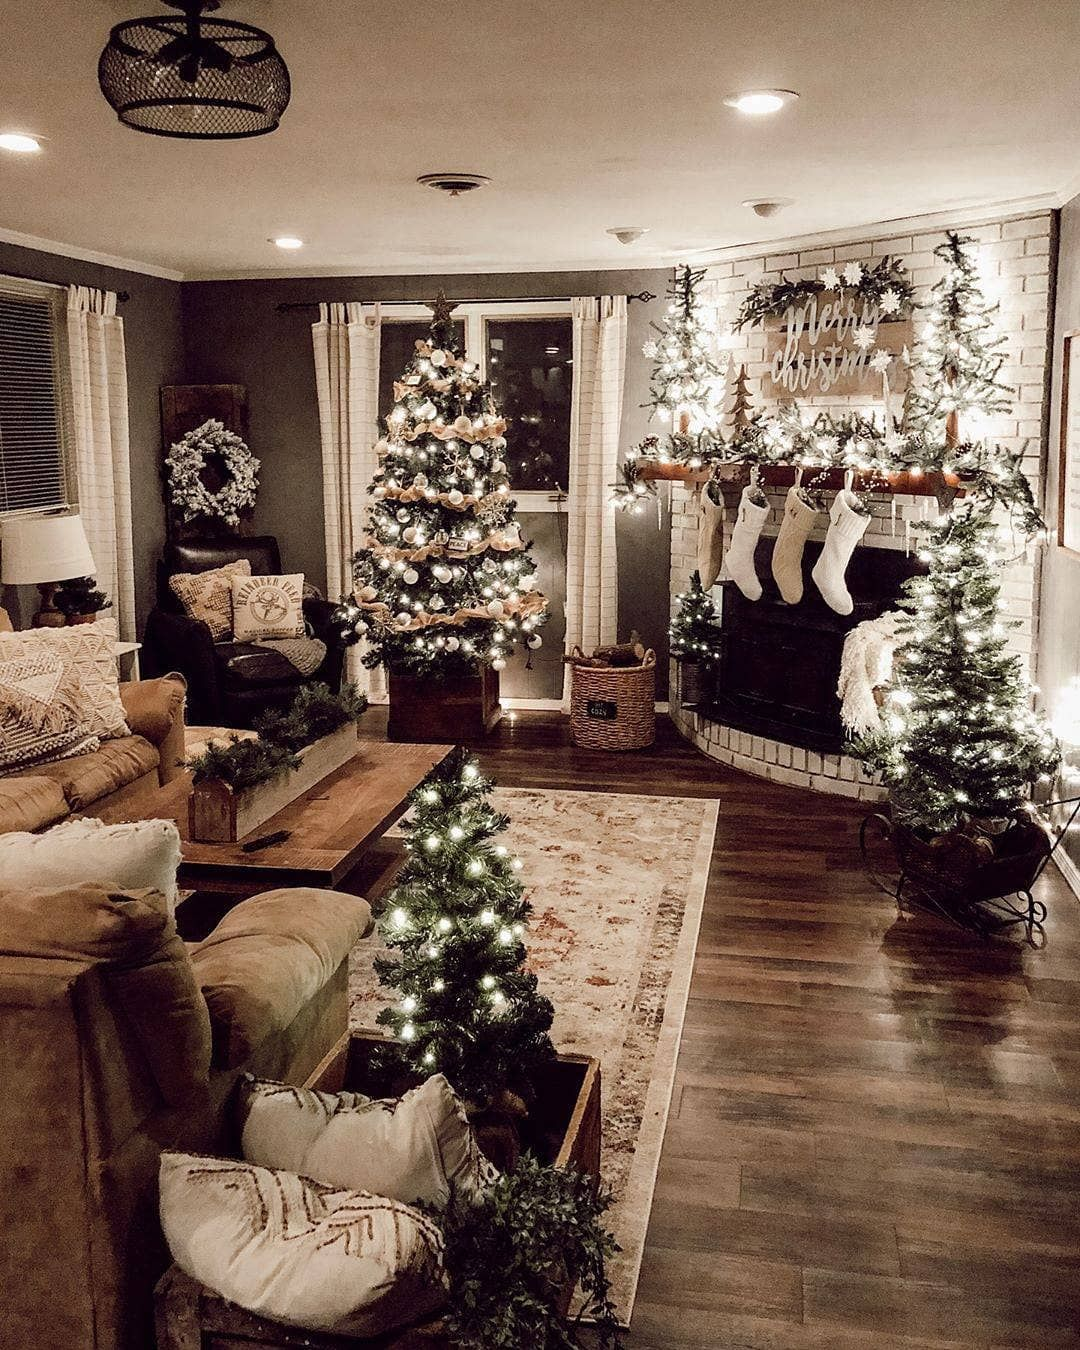 Cozi Homes On Instagram This Family Room All Ready For Christmas